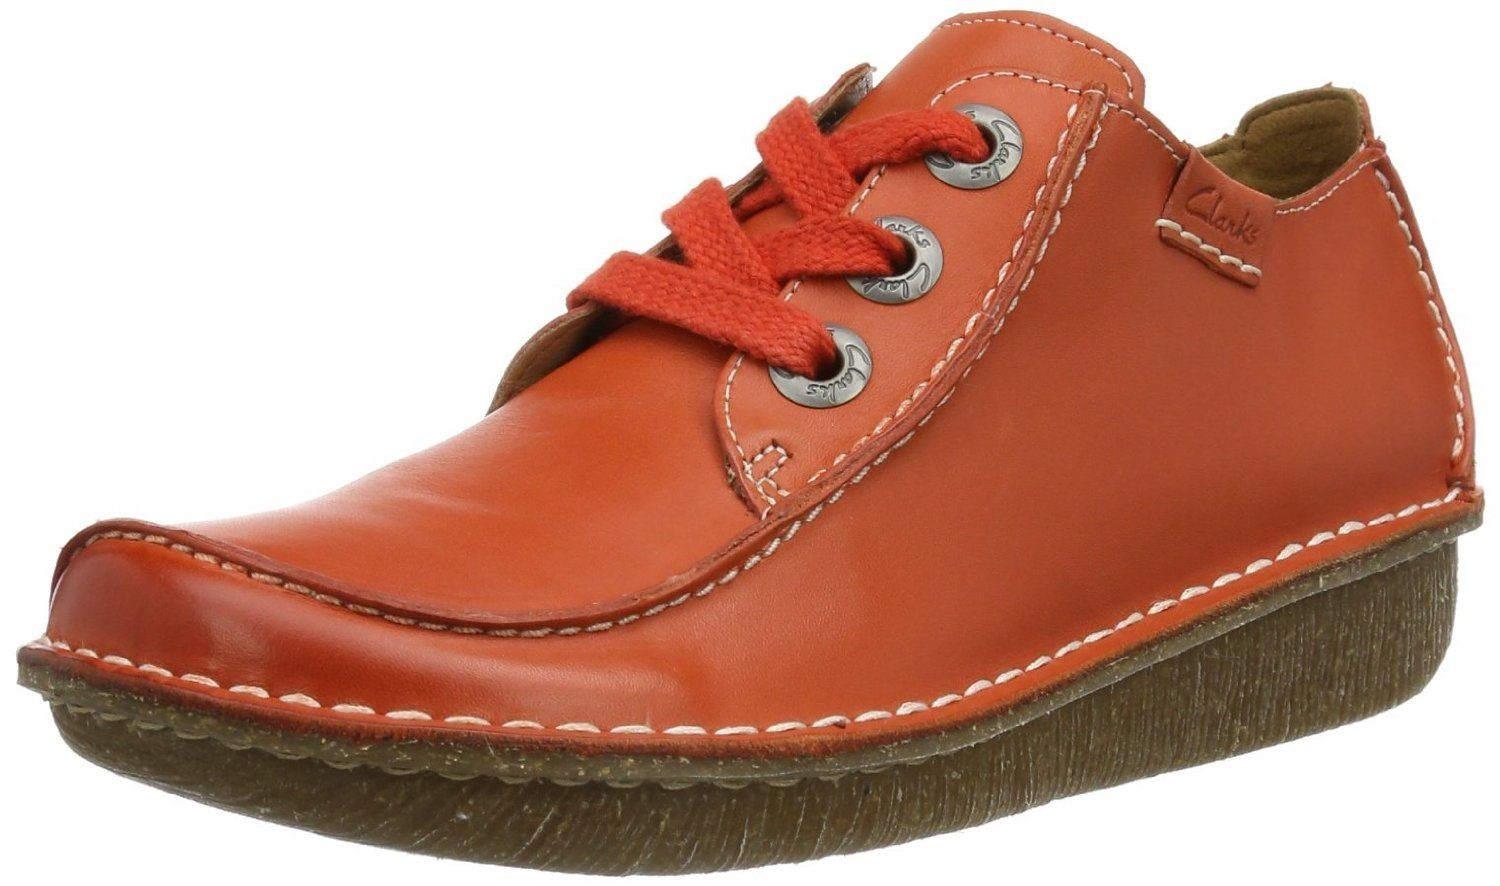 026743c21e8ee Clarks Womens Funny Dream Orange Leather: Amazon.co.uk: Shoes & Bags ...